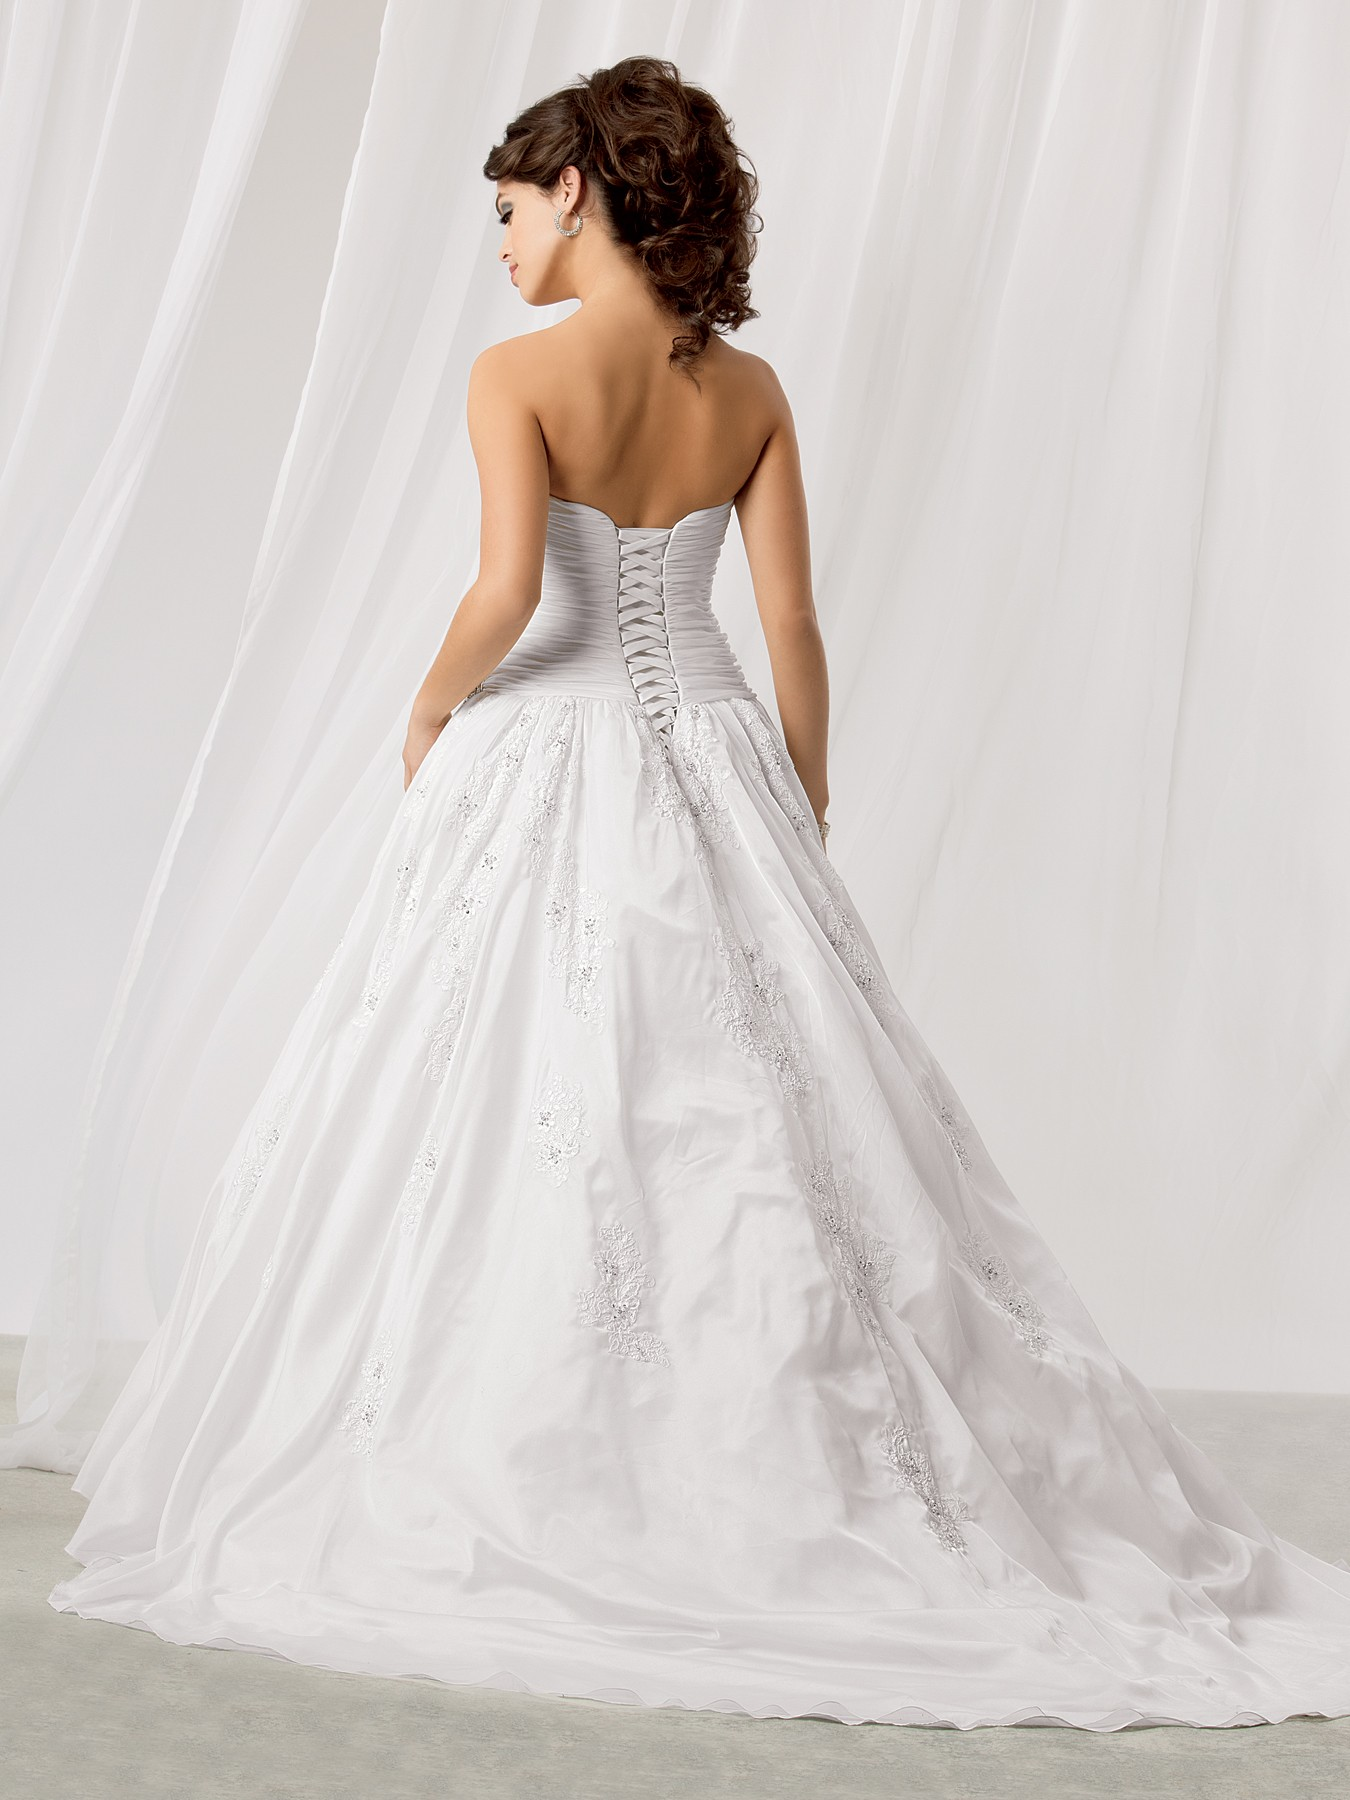 Reflections by Jordan 2013 Spring Bridal Collection